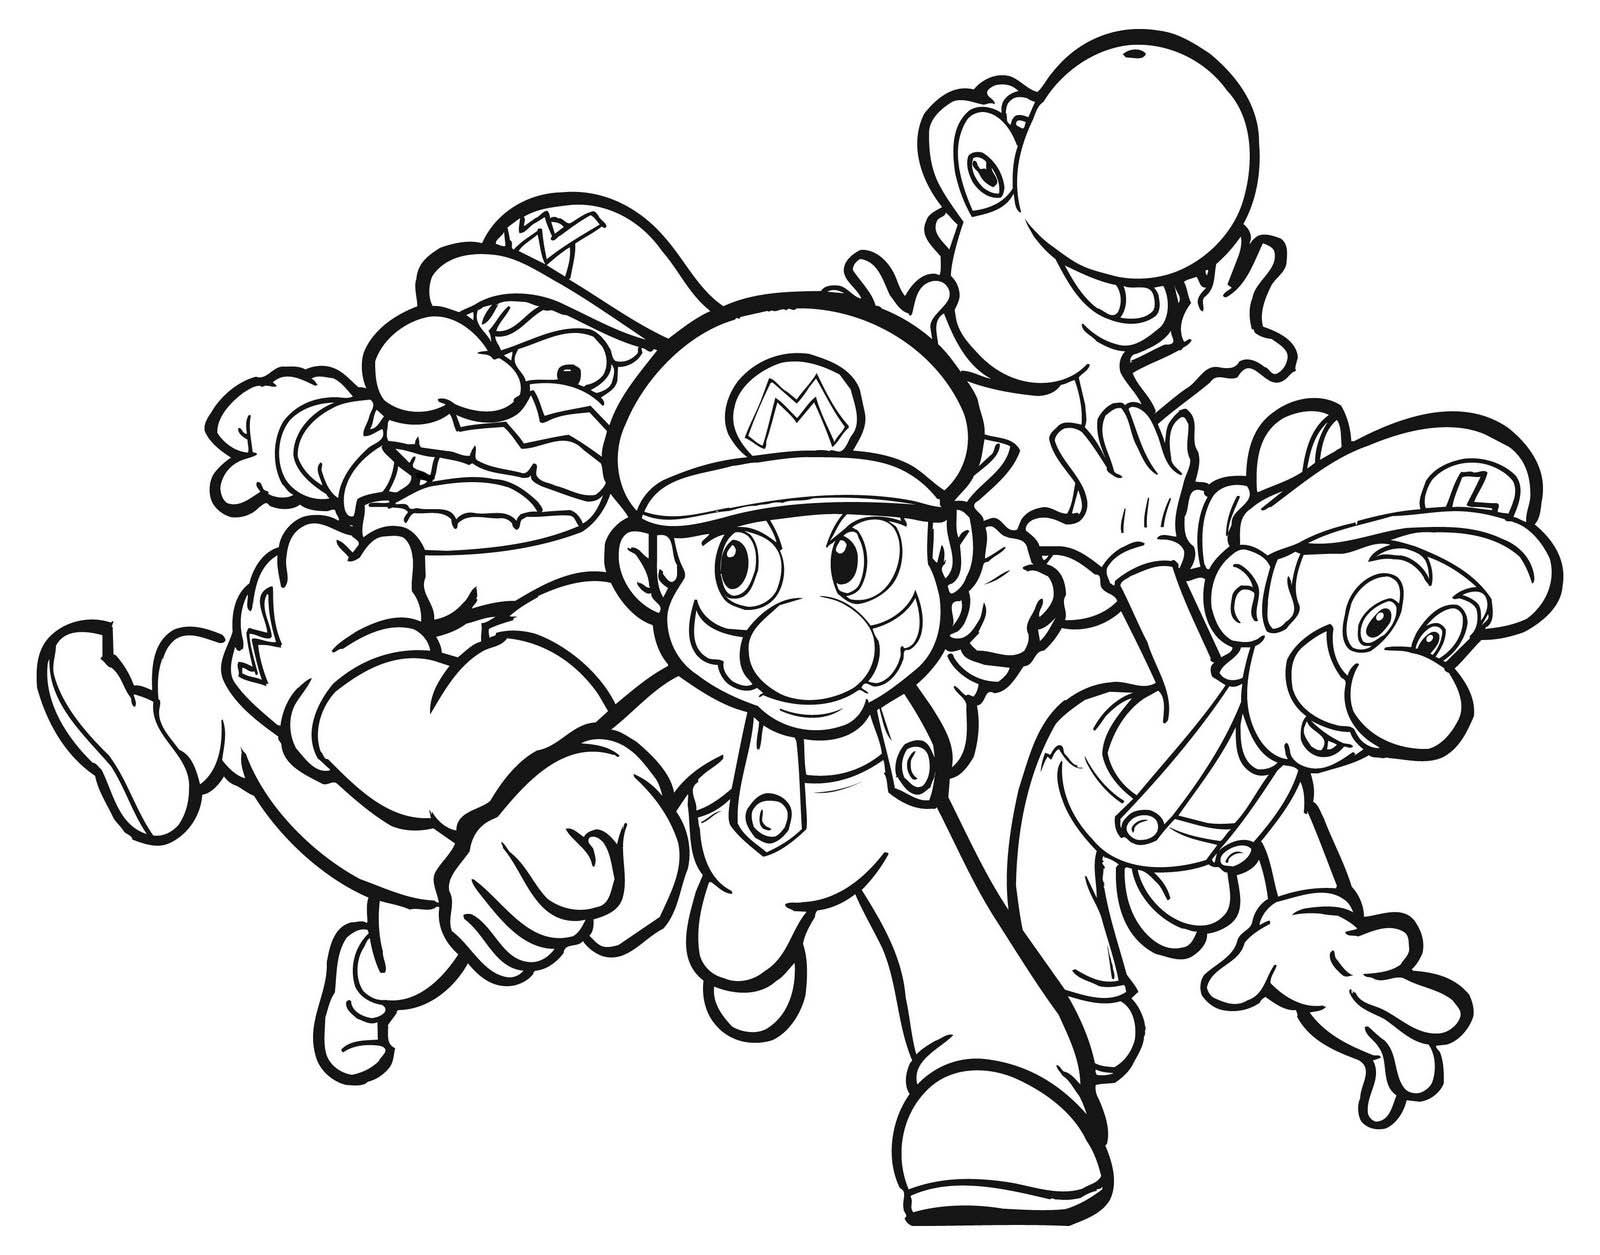 Free Printable Coloring Pages Of Mario And Luigi Characters